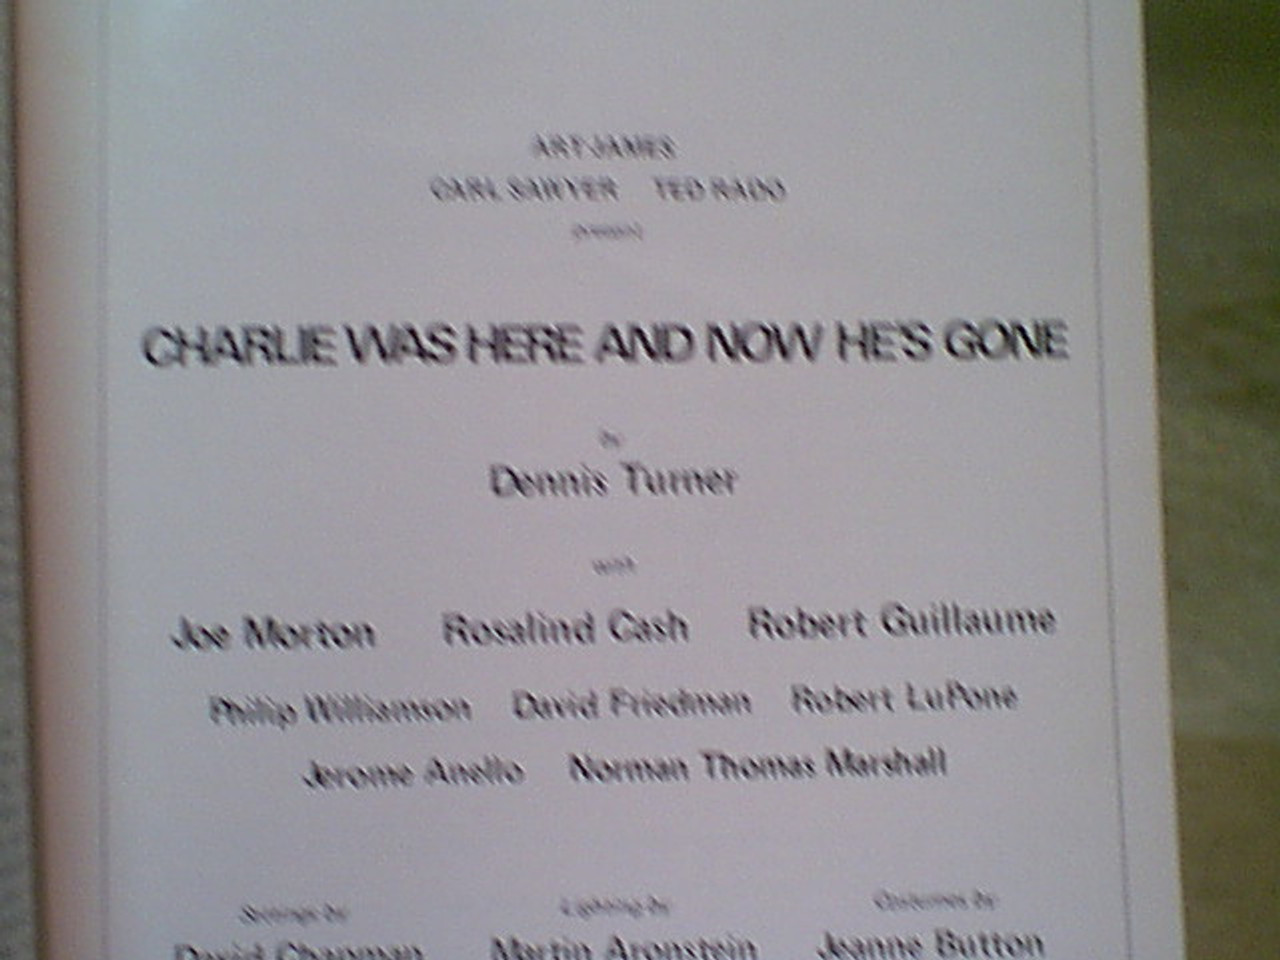 """Guillaume, Robert 1971 Theatre Program """"Charlie Was Here And Now He's Gone"""" Signed Autograph"""